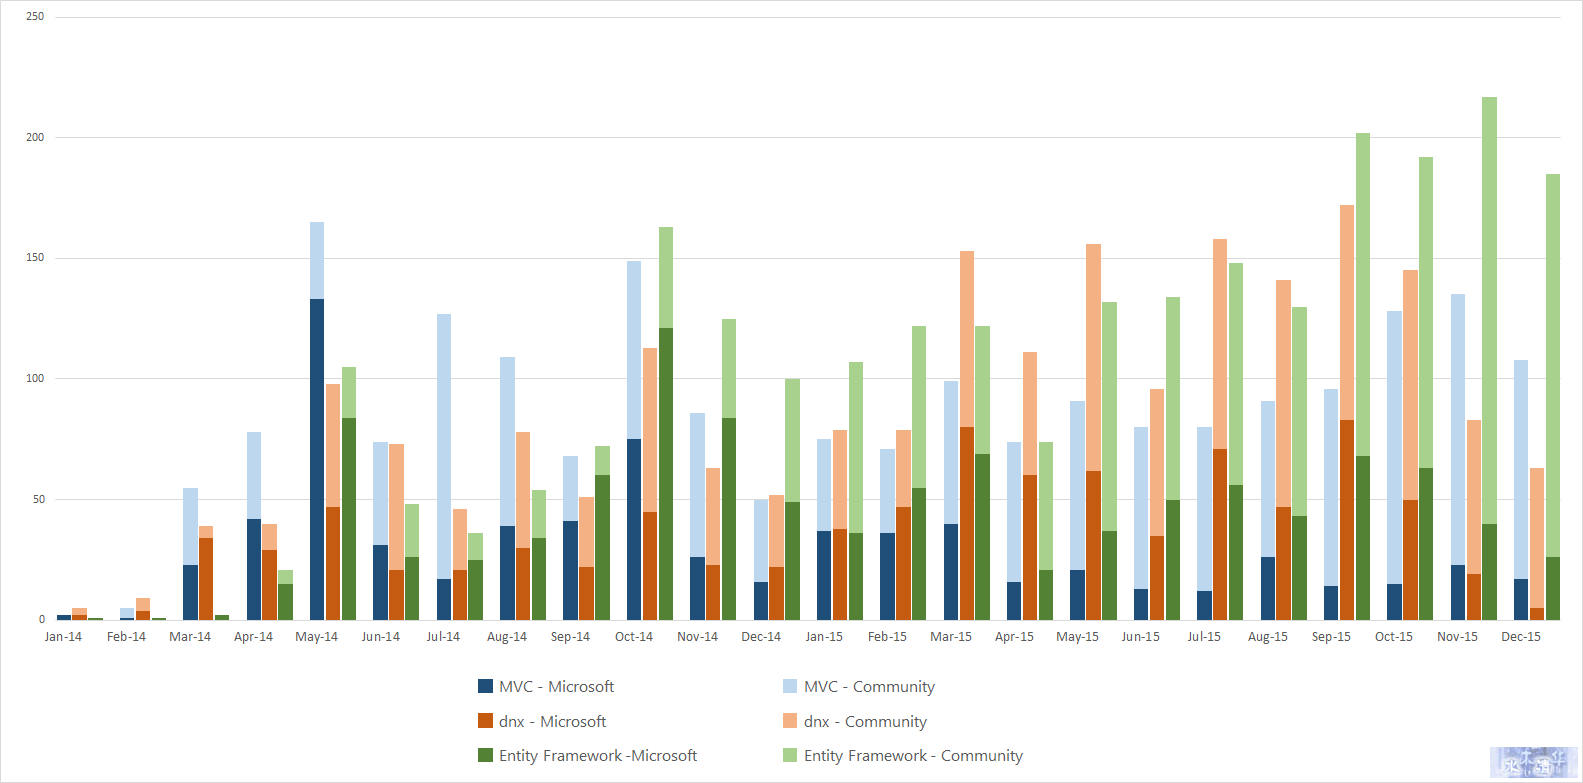 Issues Per Month - By Submitter (Microsoft or Community)